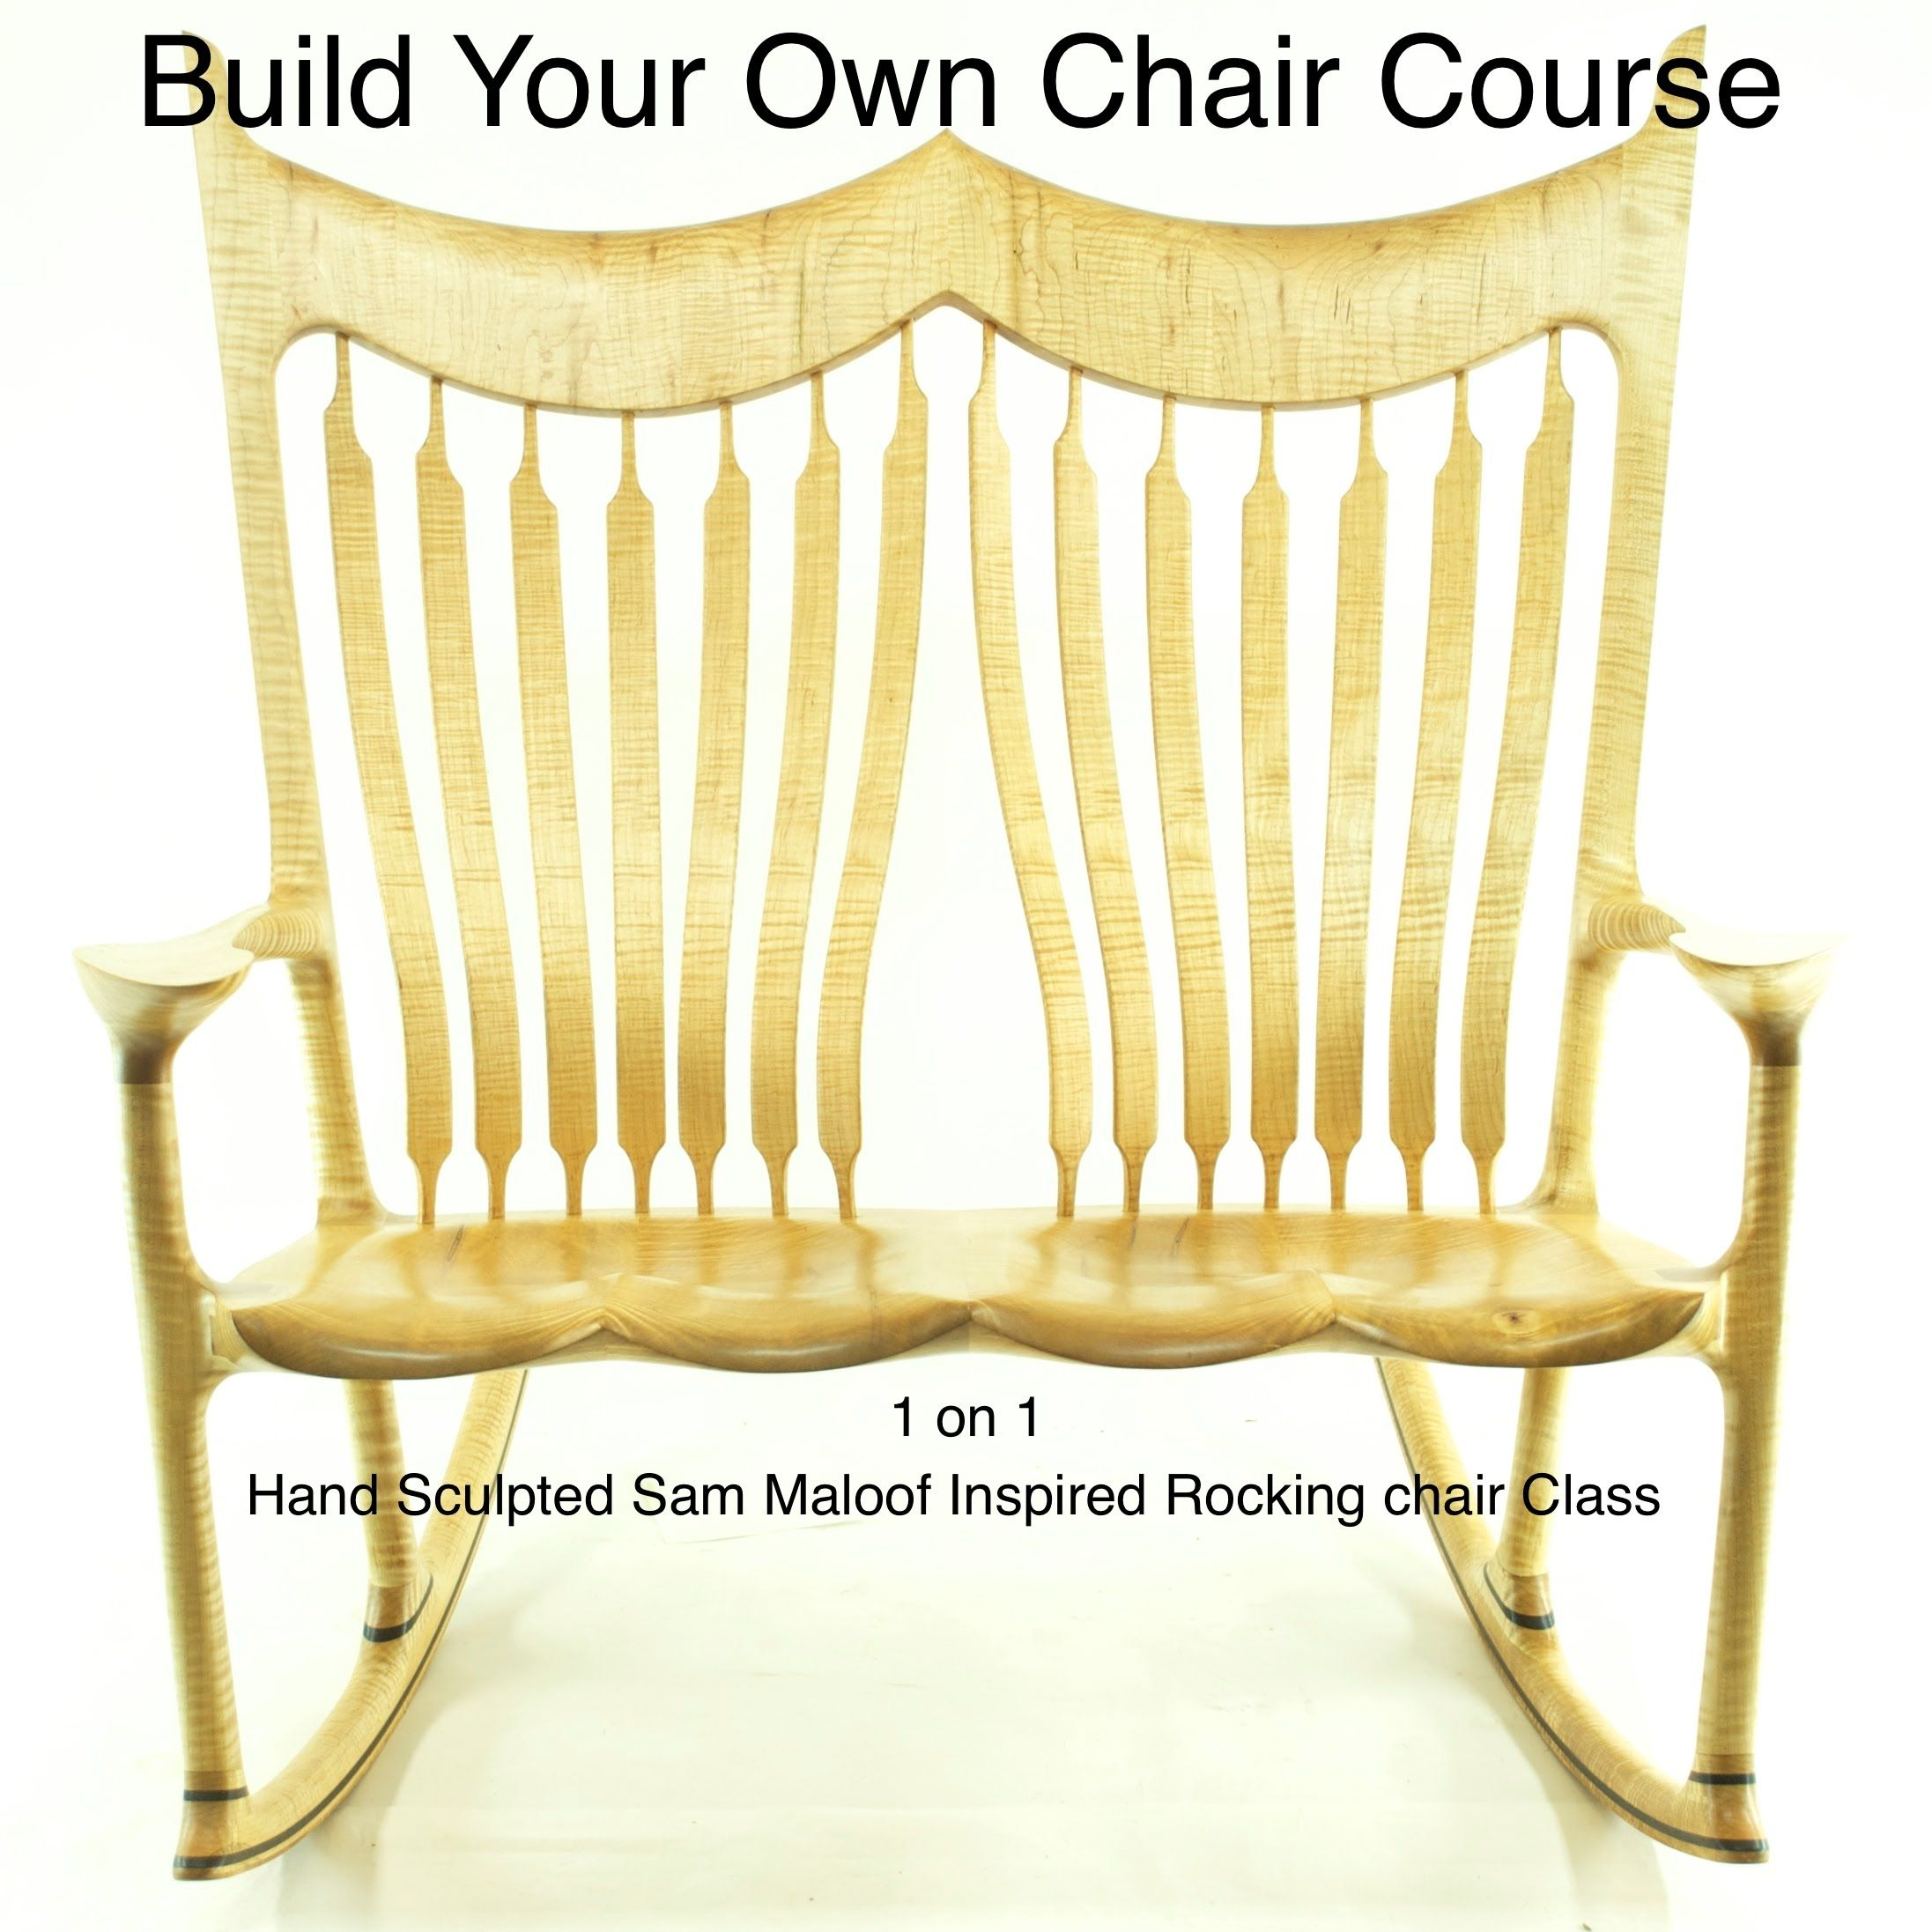 Build your own chair class Curly maple double rocking chair